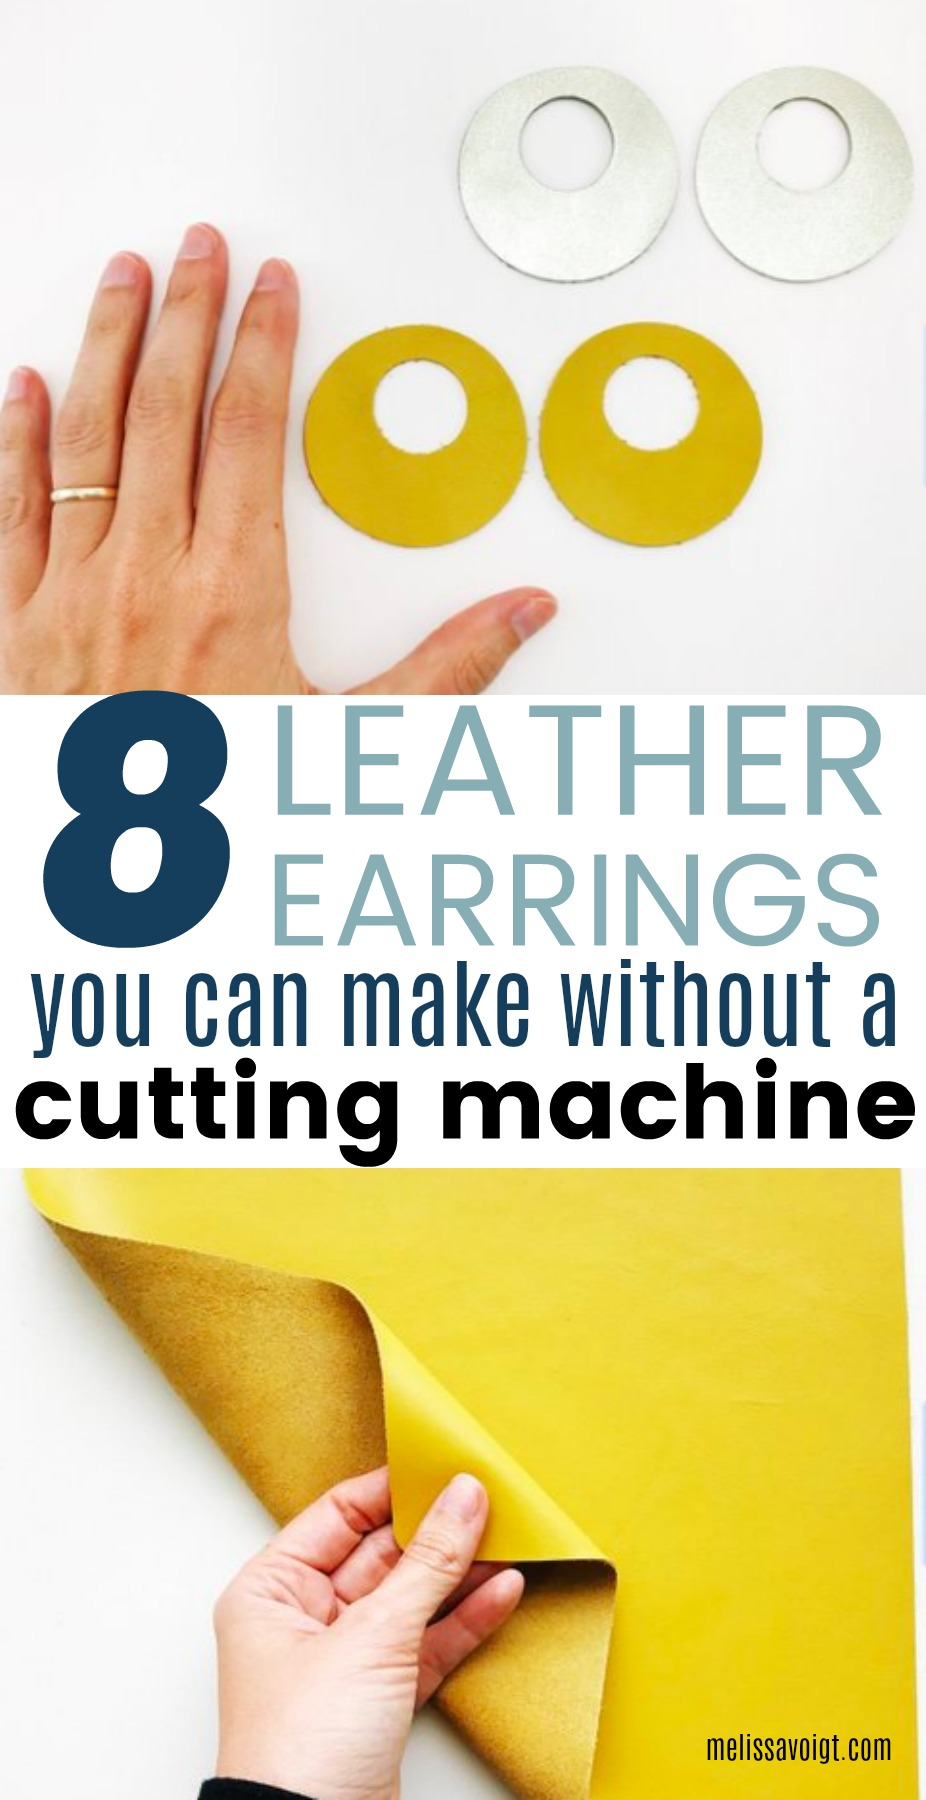 leather earrings without a machine.jpg